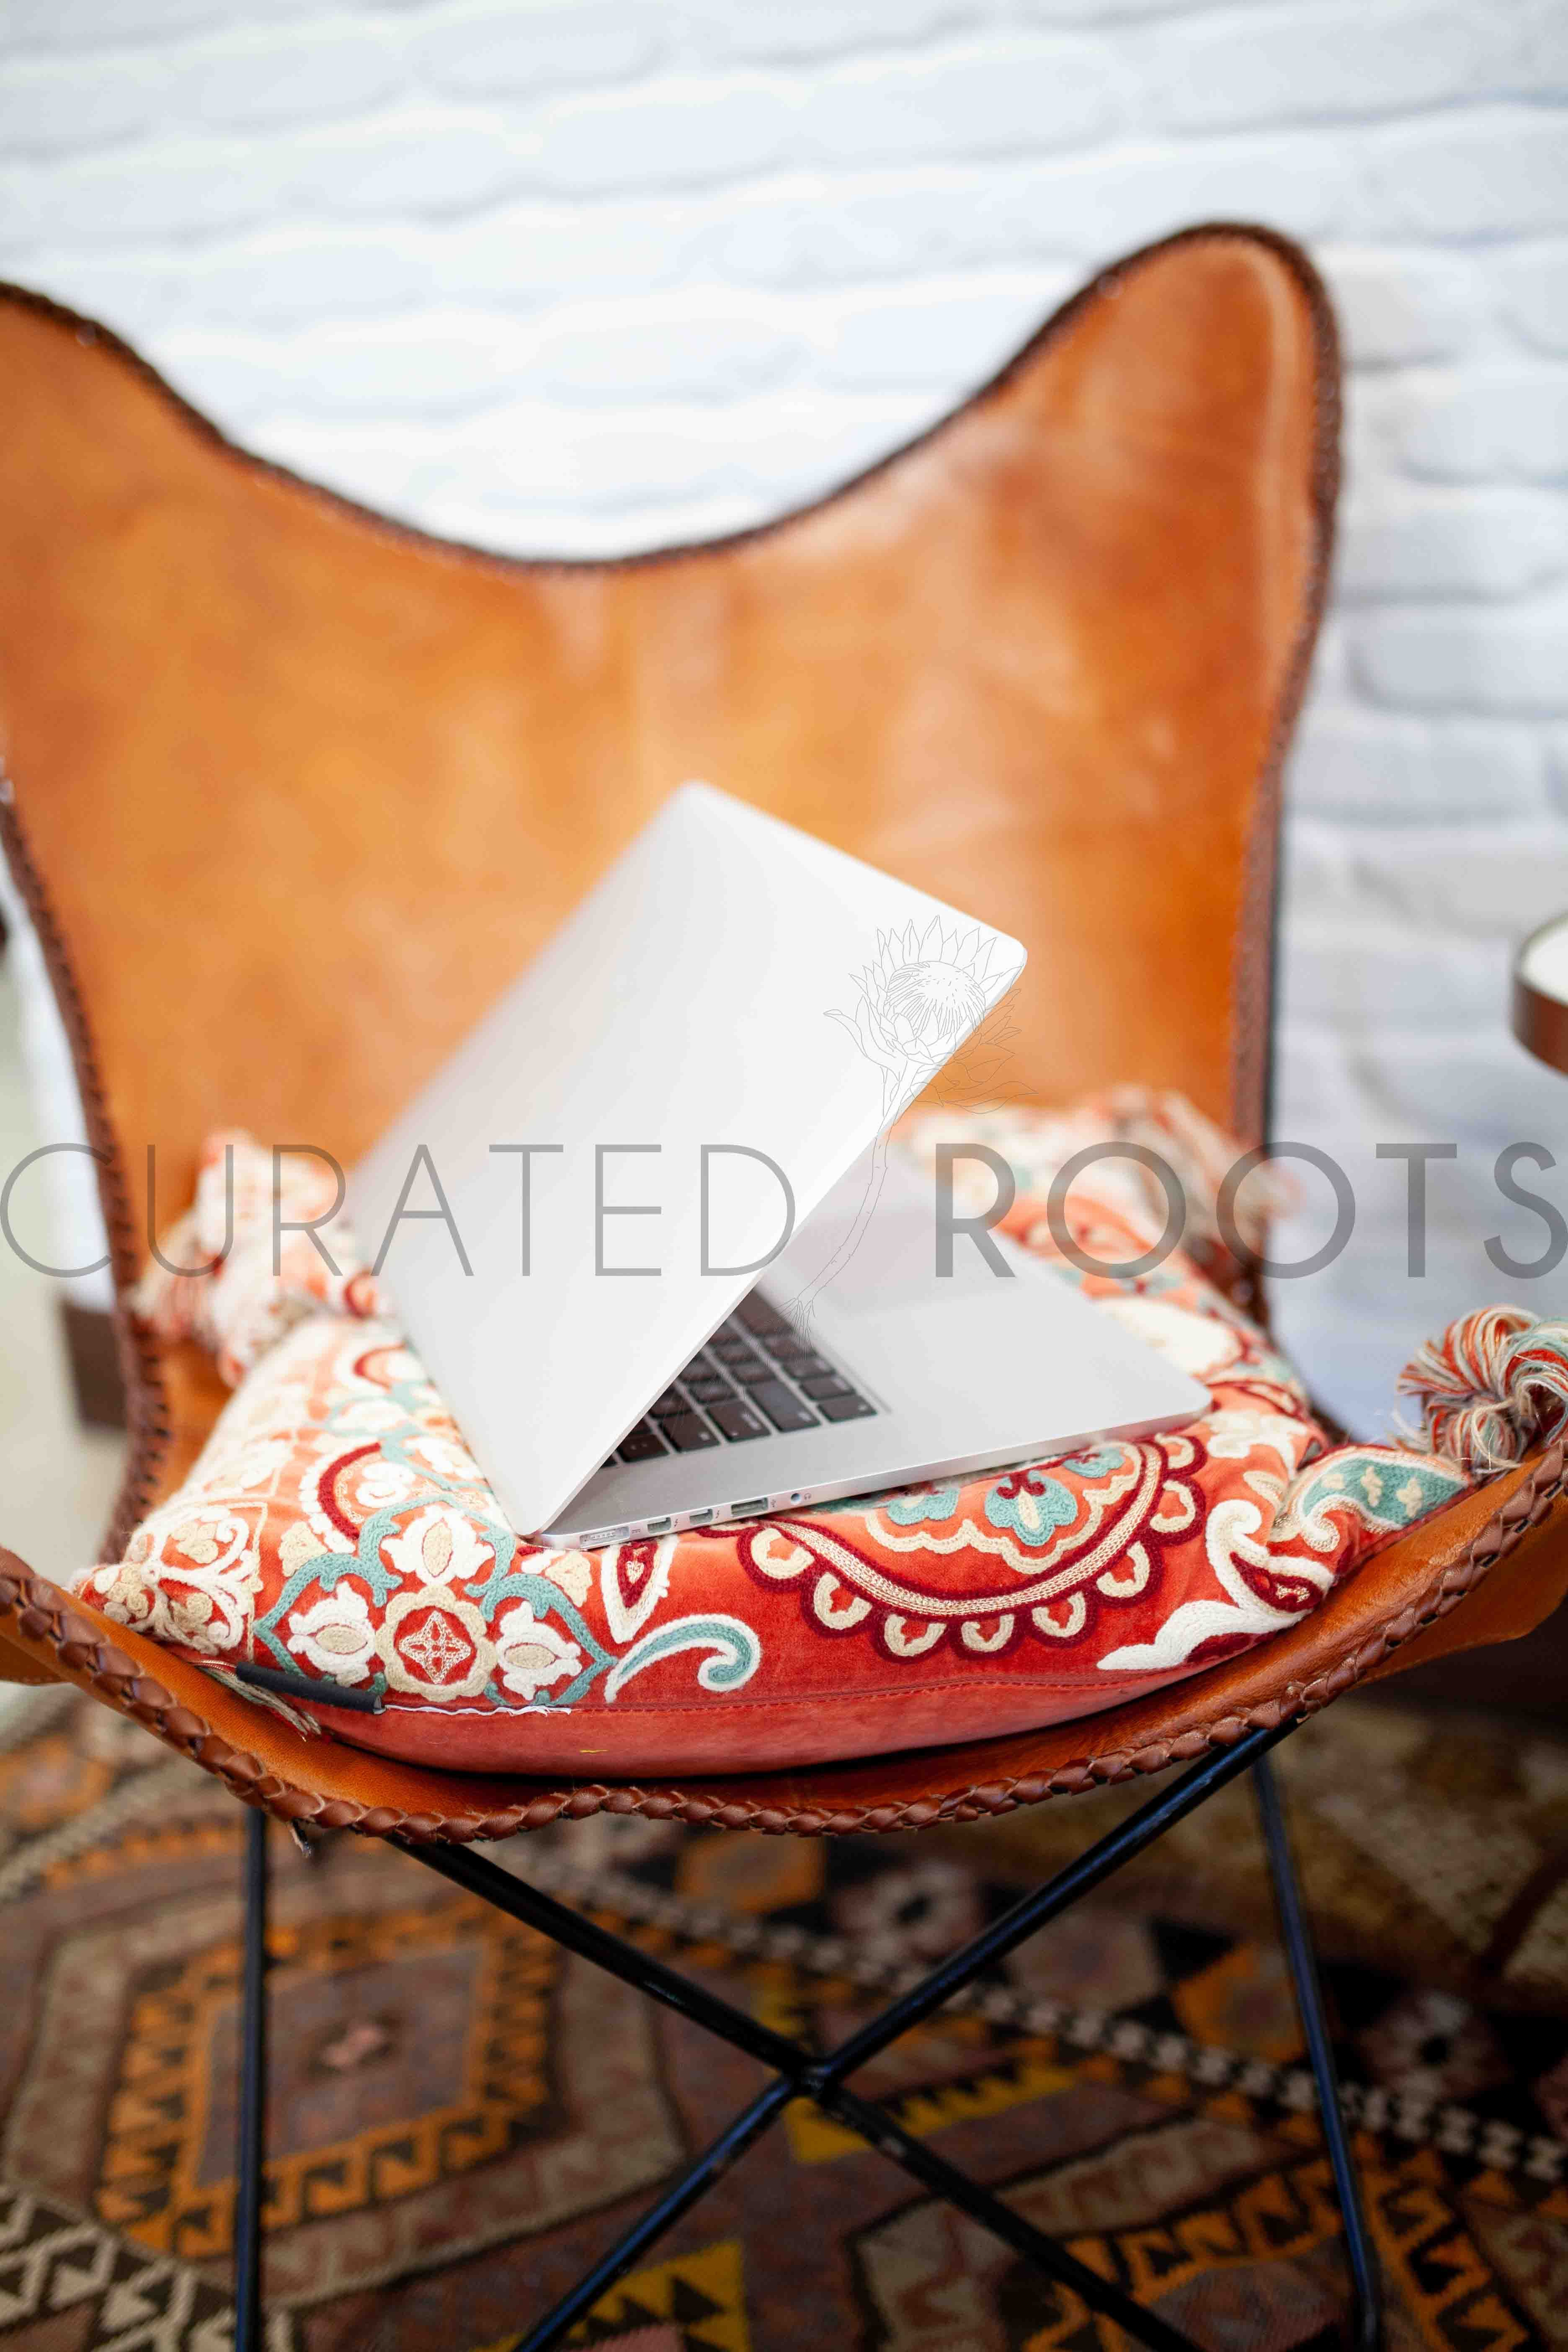 Boho Vibes Collection Curated Roots Boho vibe, Color